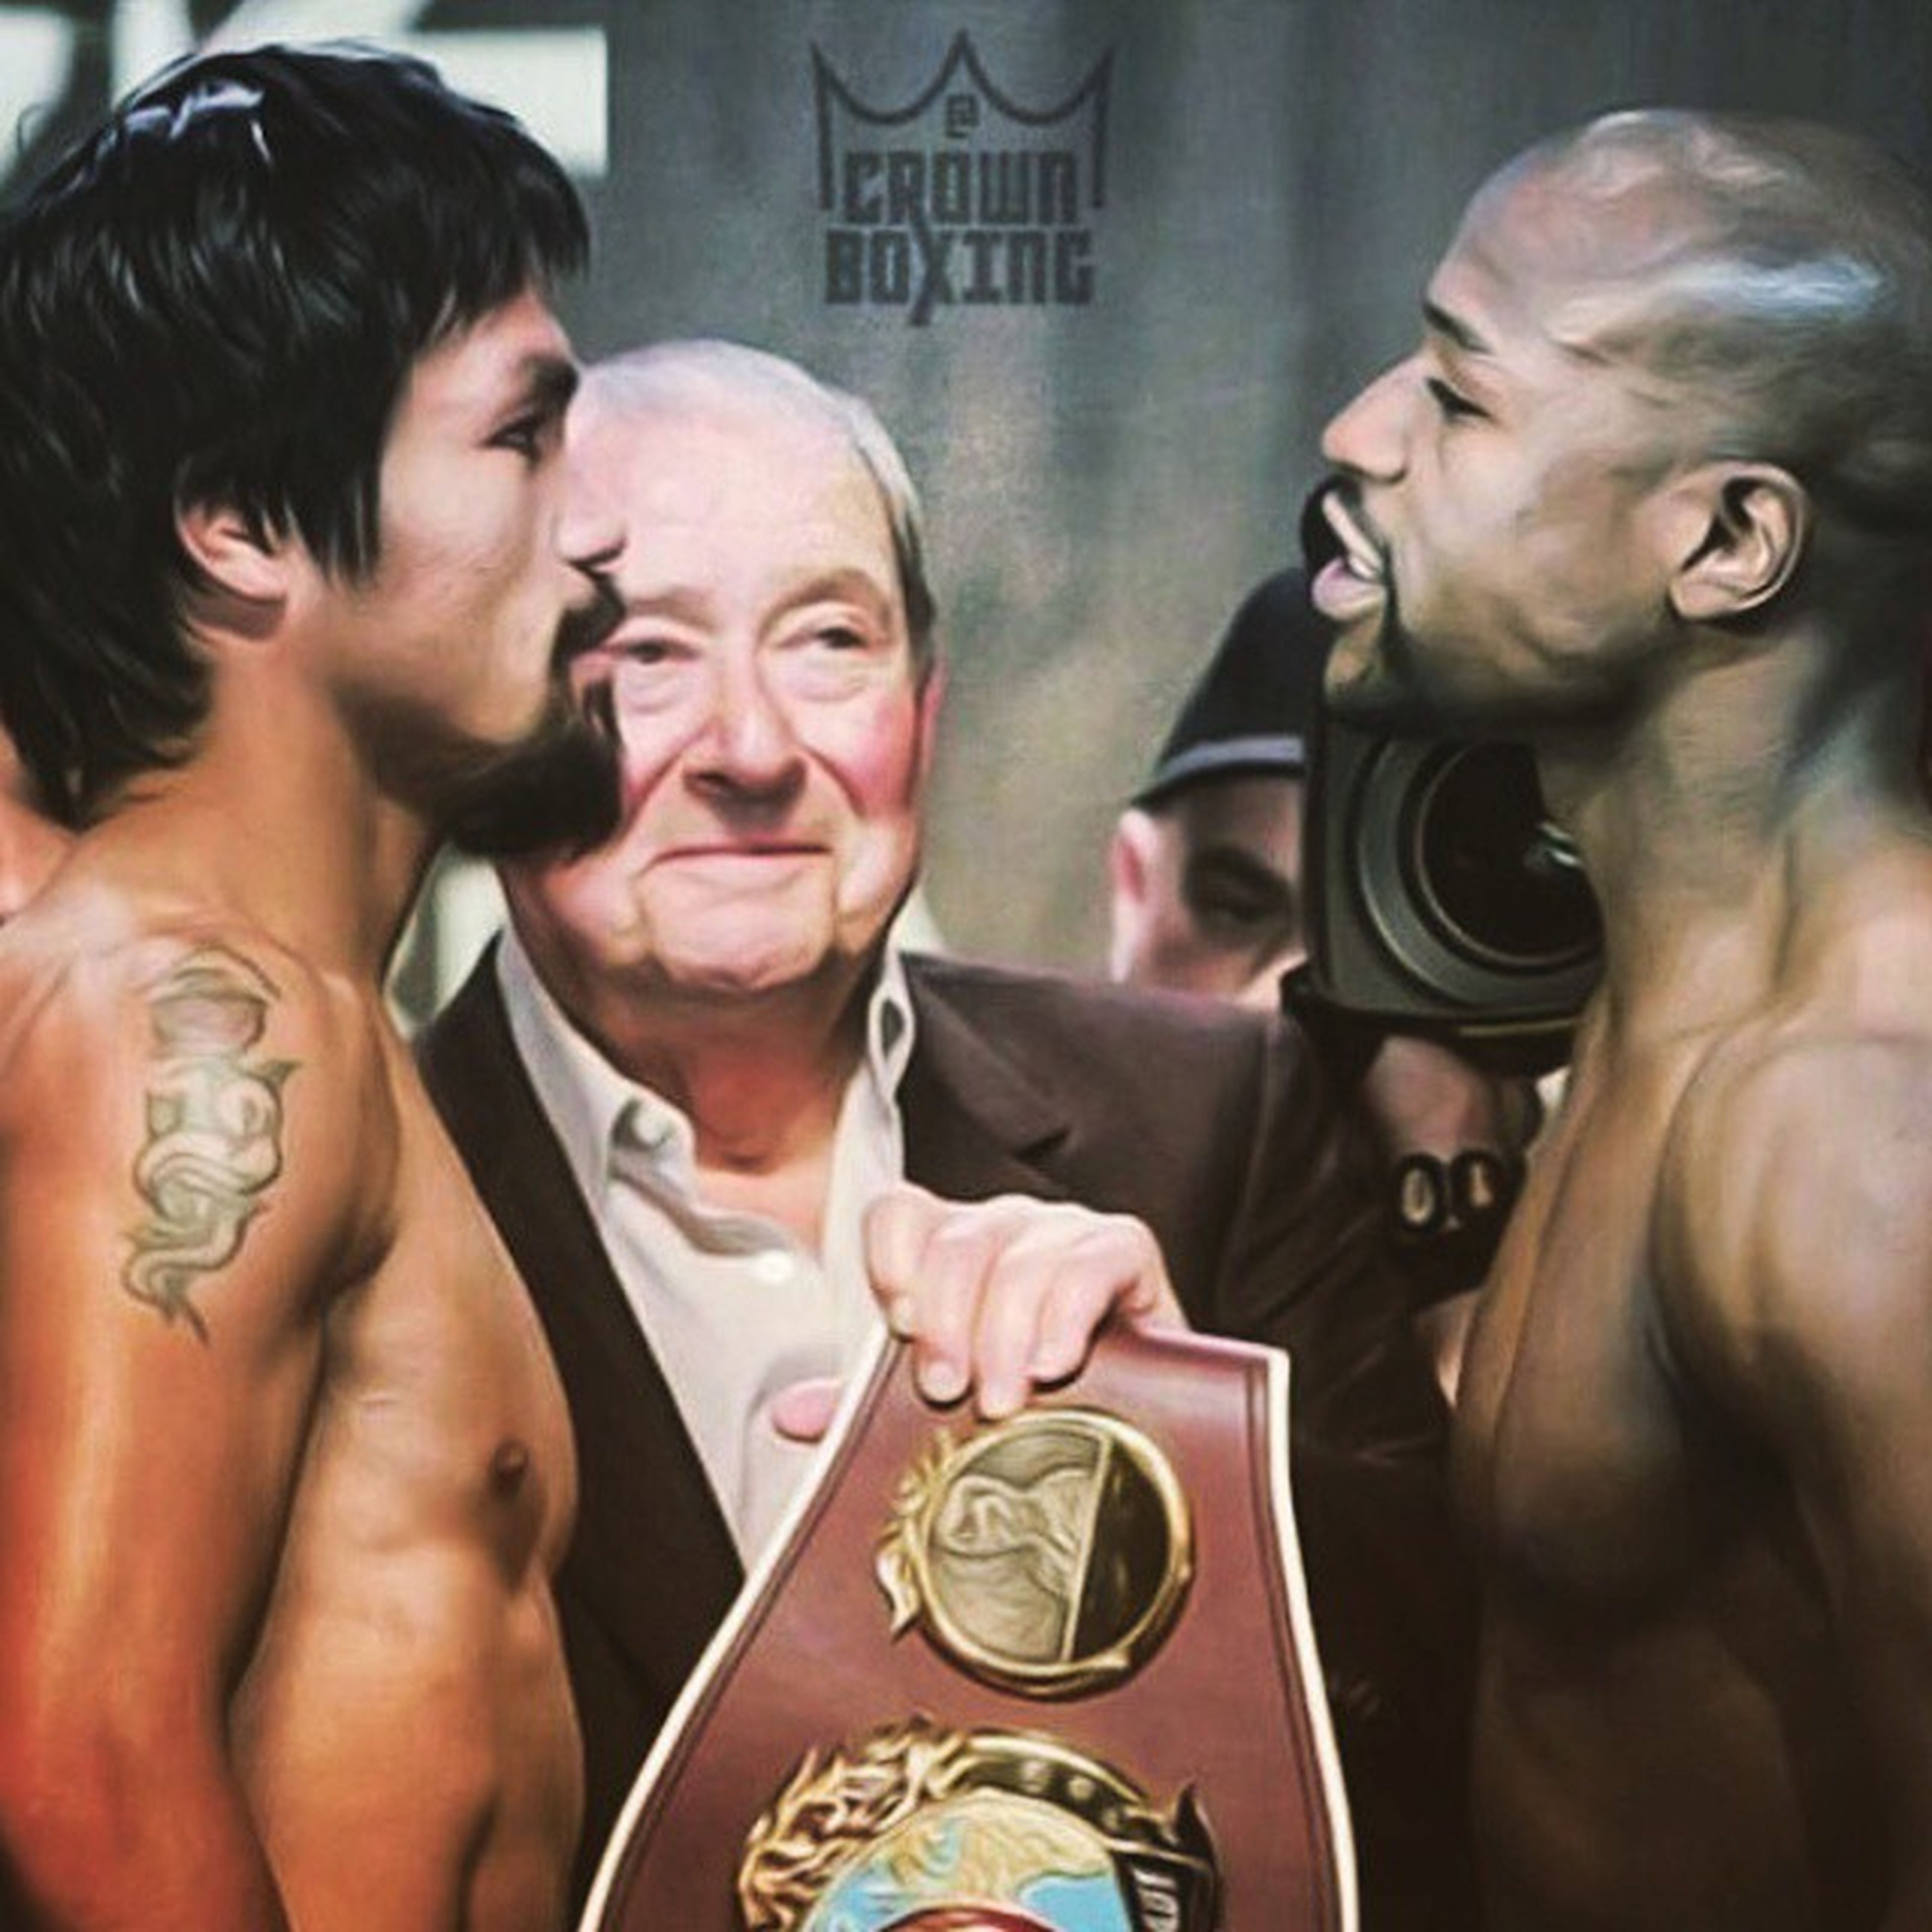 Pacquiao vs Mayweather, who's your pick to win? Me? I'm with the underdog though. Picture by Crown Boxing. CrownBoxing Mannypacquiao Floydmayweather MannyVsFloyd .